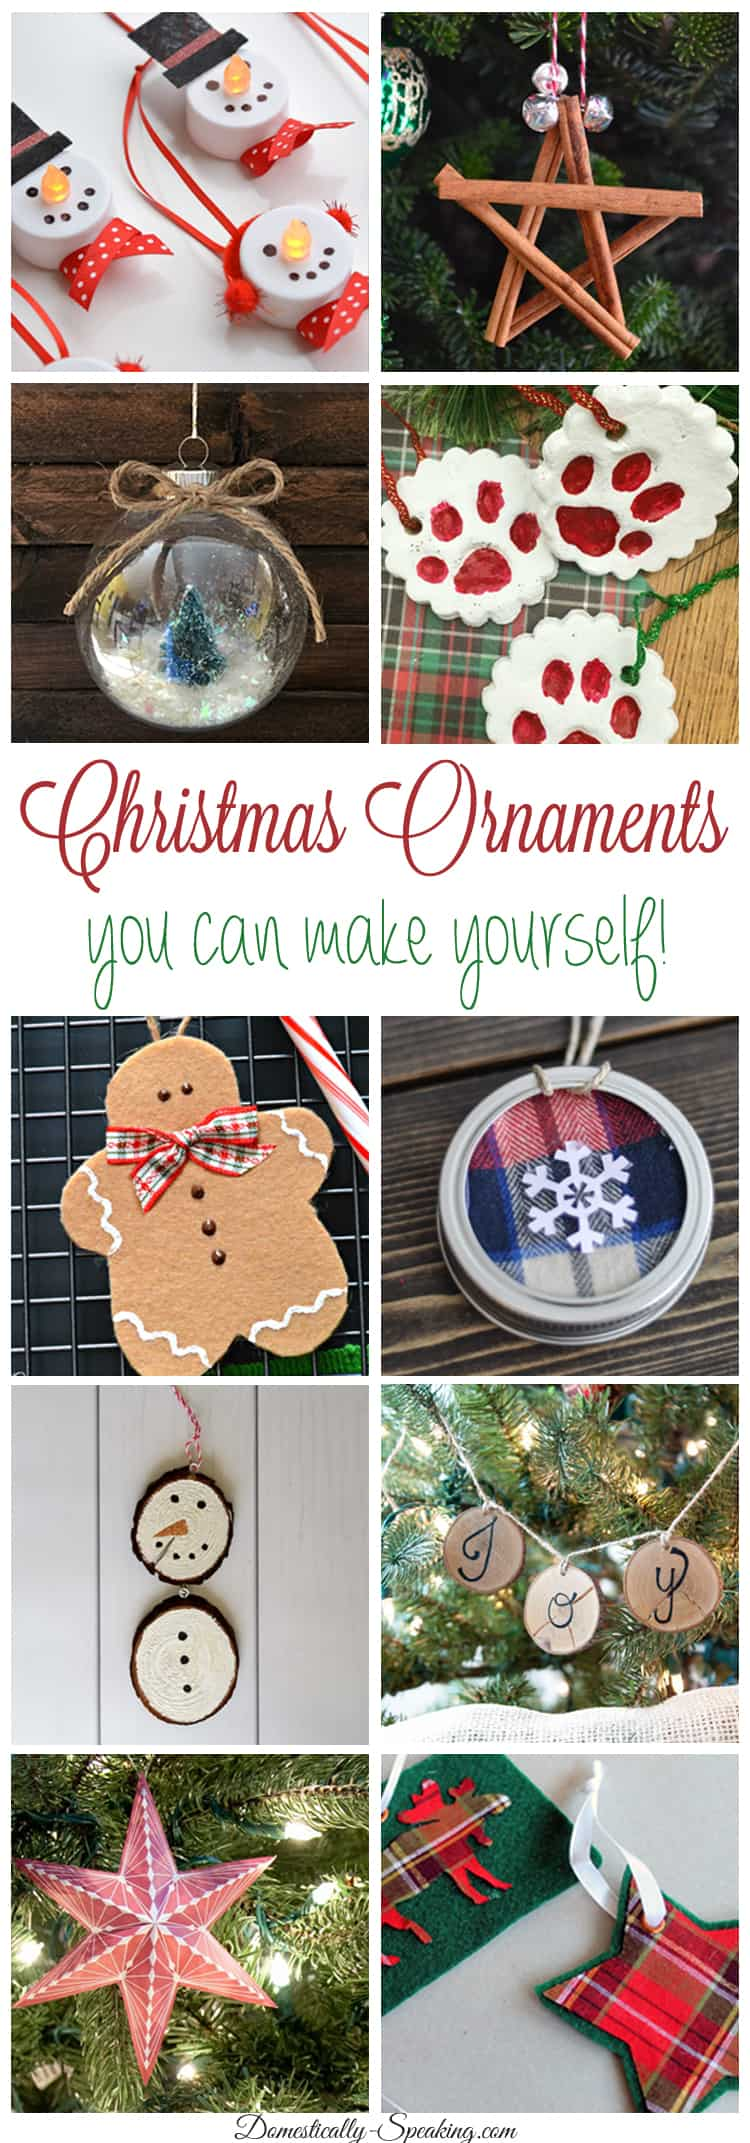 Christmas decorations you can make yourself - Diy Christmas Ornaments You Can Make Yourself